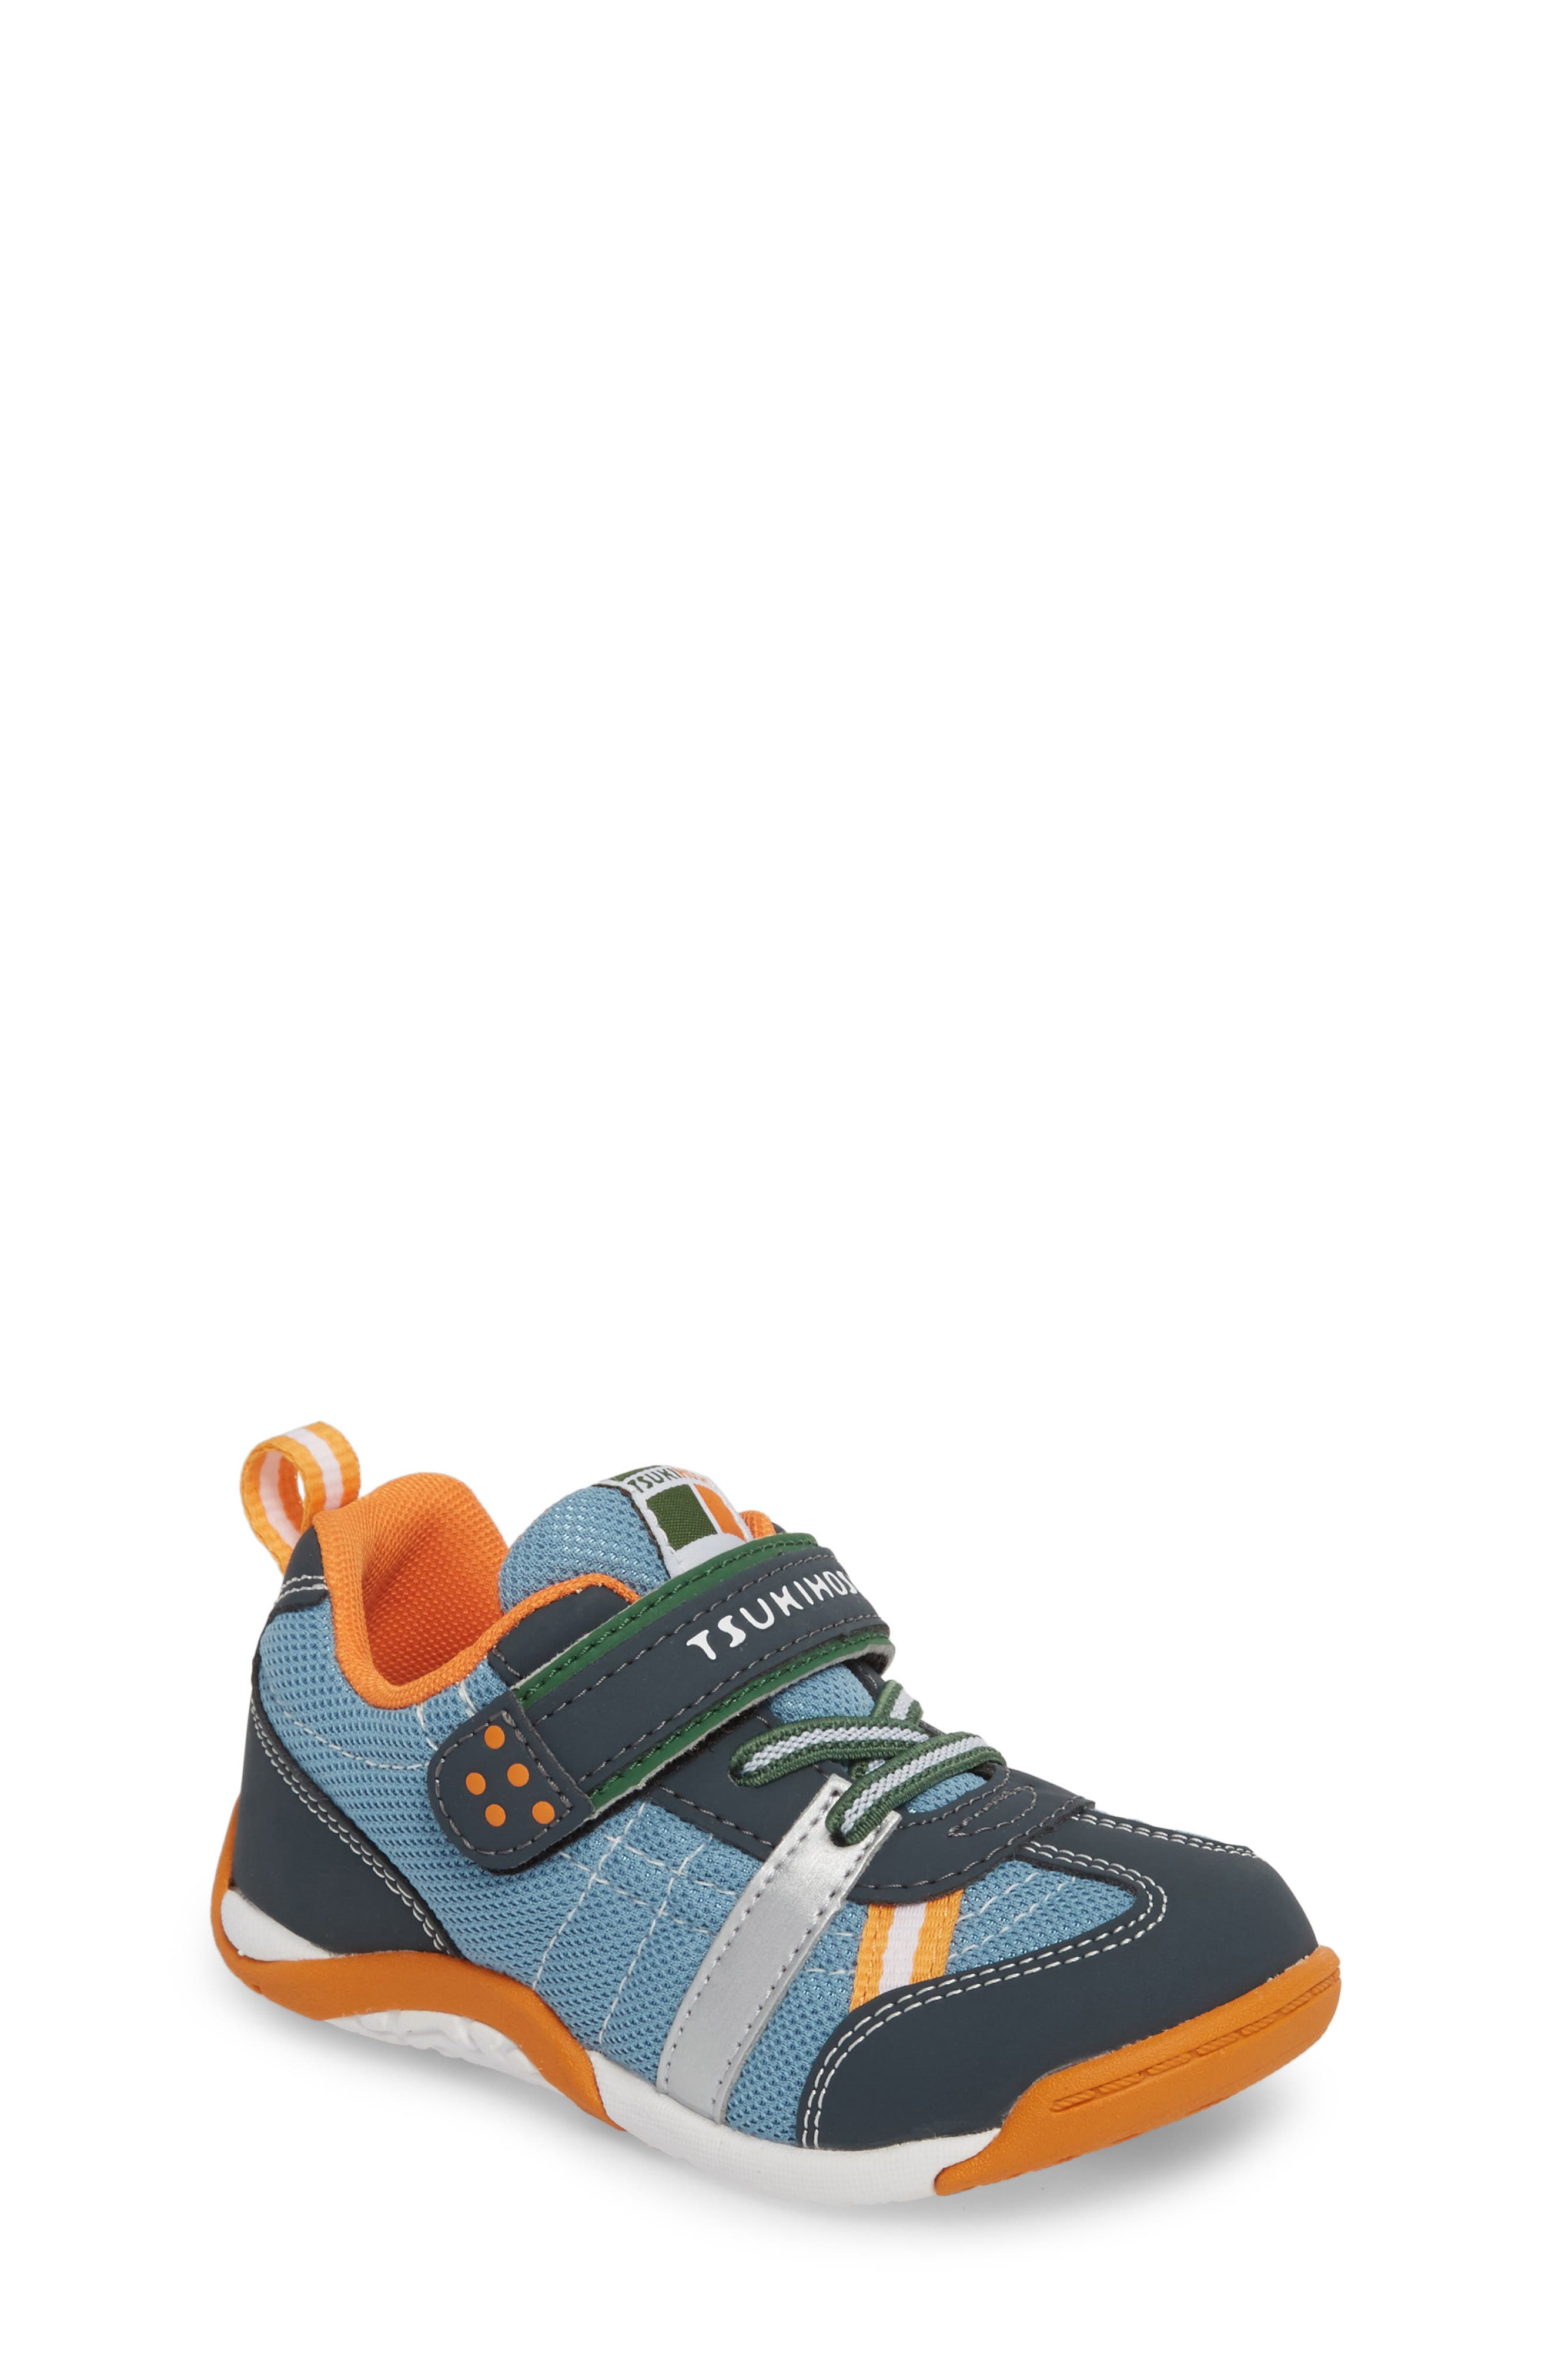 Kaz Washable Sneaker,                             Main thumbnail 1, color,                             CHARCOAL/ SEA